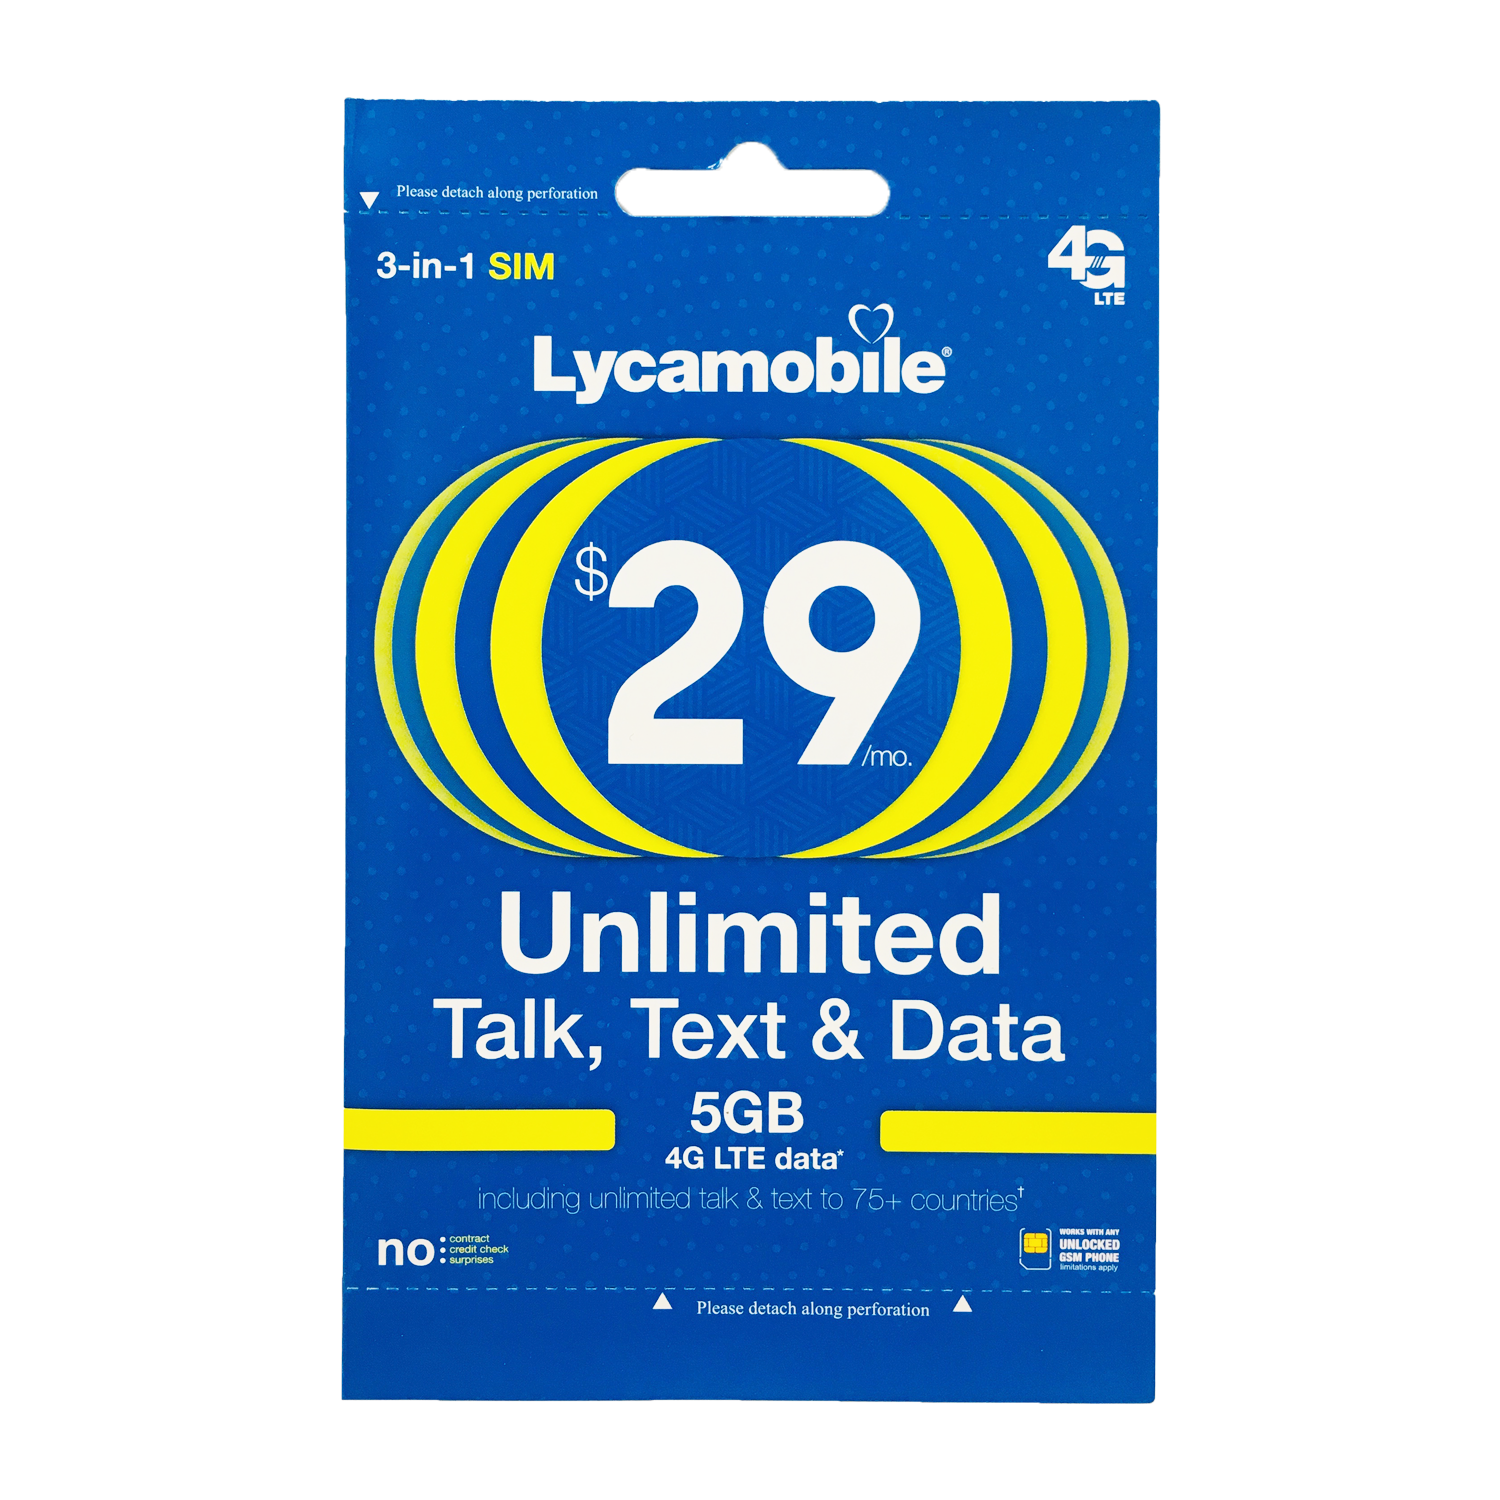 🔥LycaMobile Prepaid Micro/Nano Sim Card Preload $29 Plan